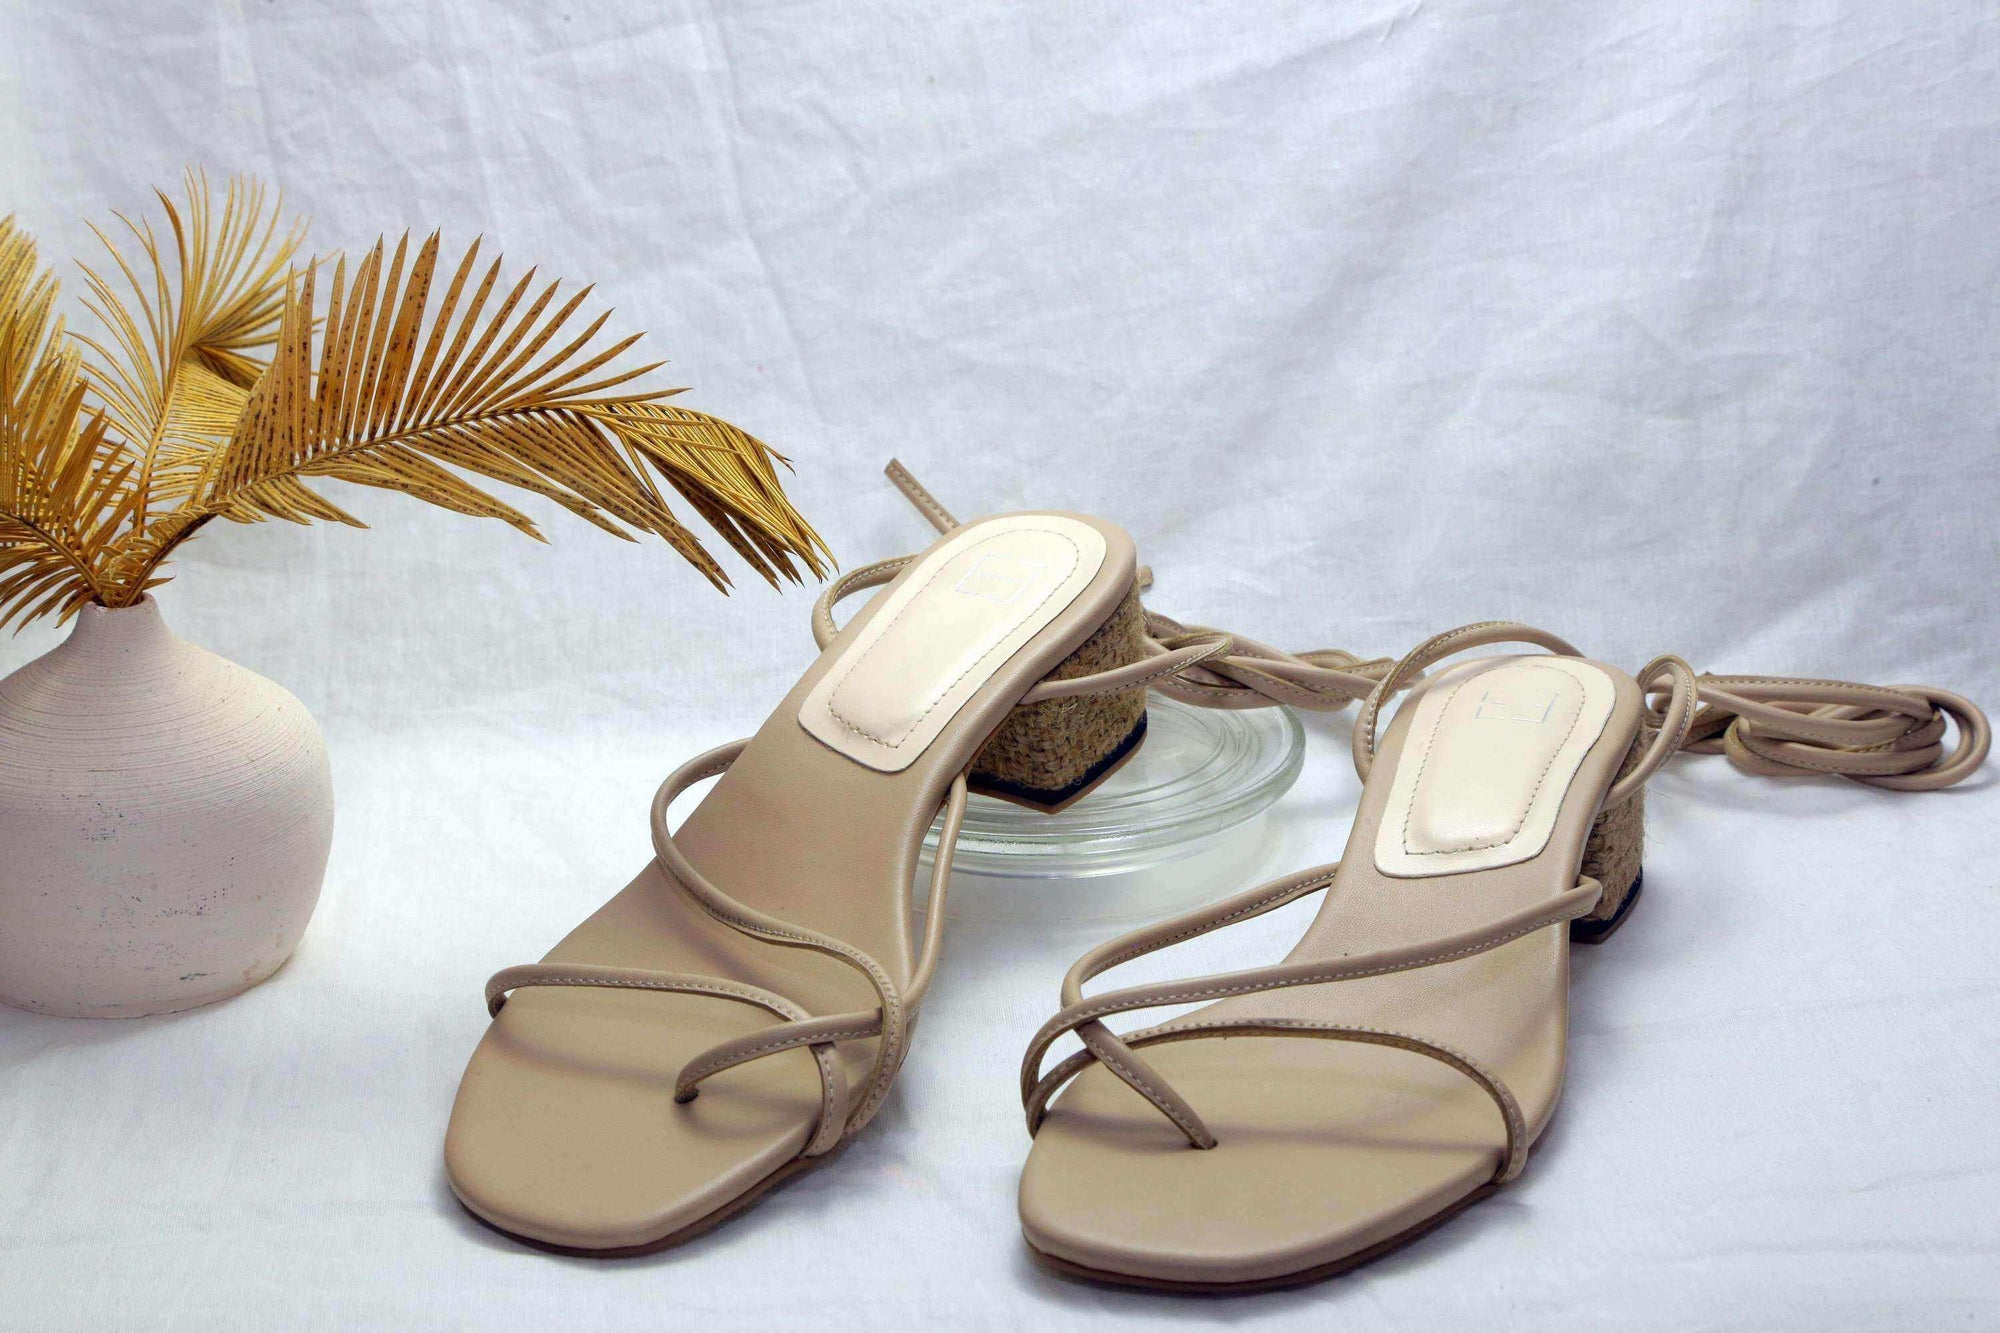 Tali Sandals Nude EESOME